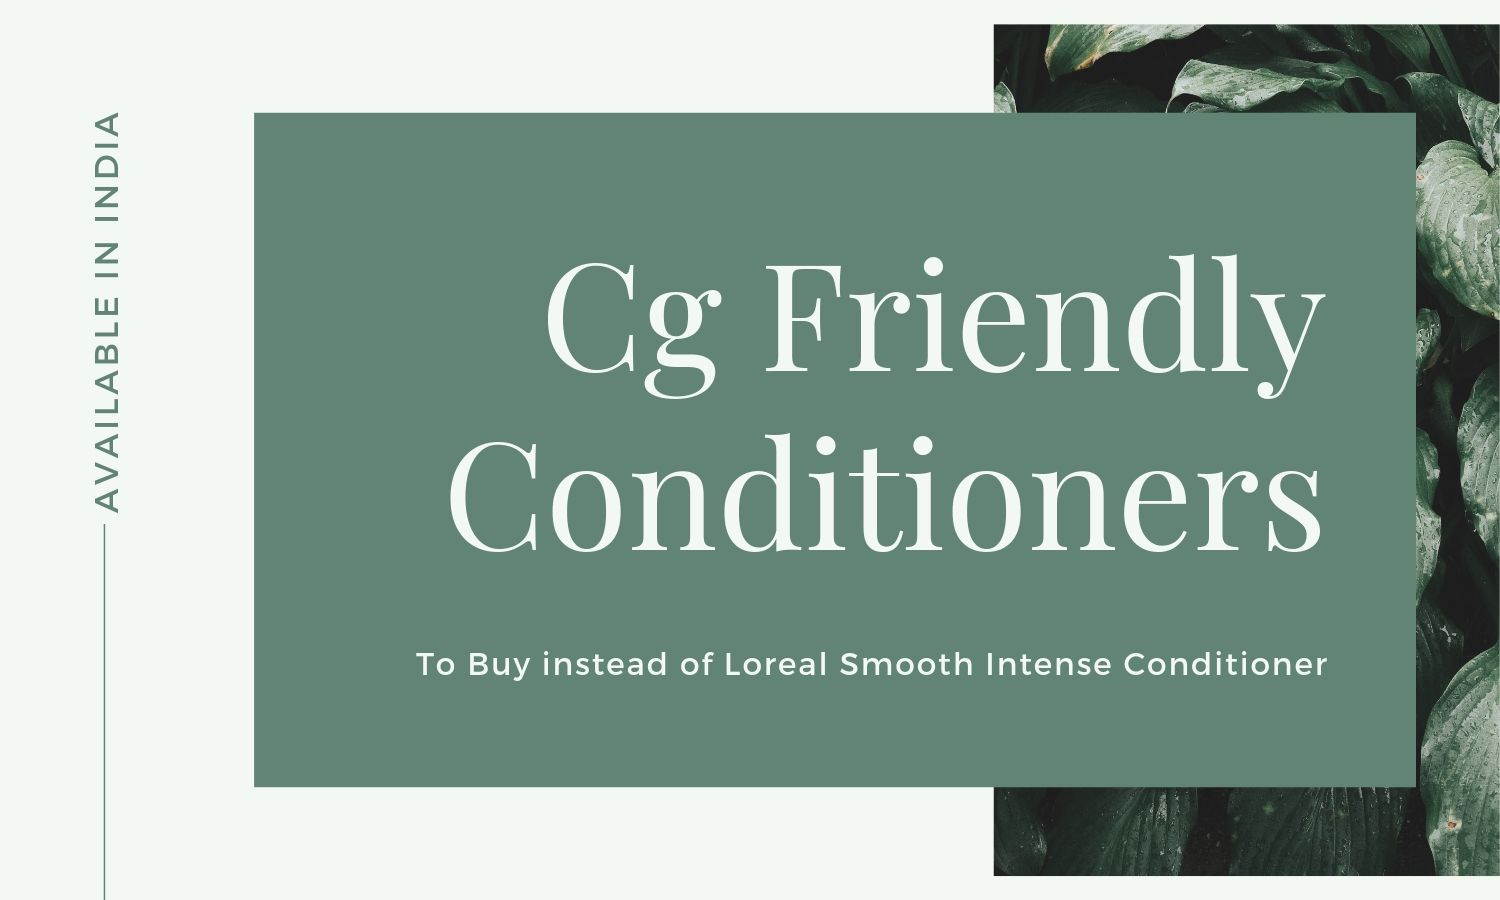 Cg Friendly Conditioners in India